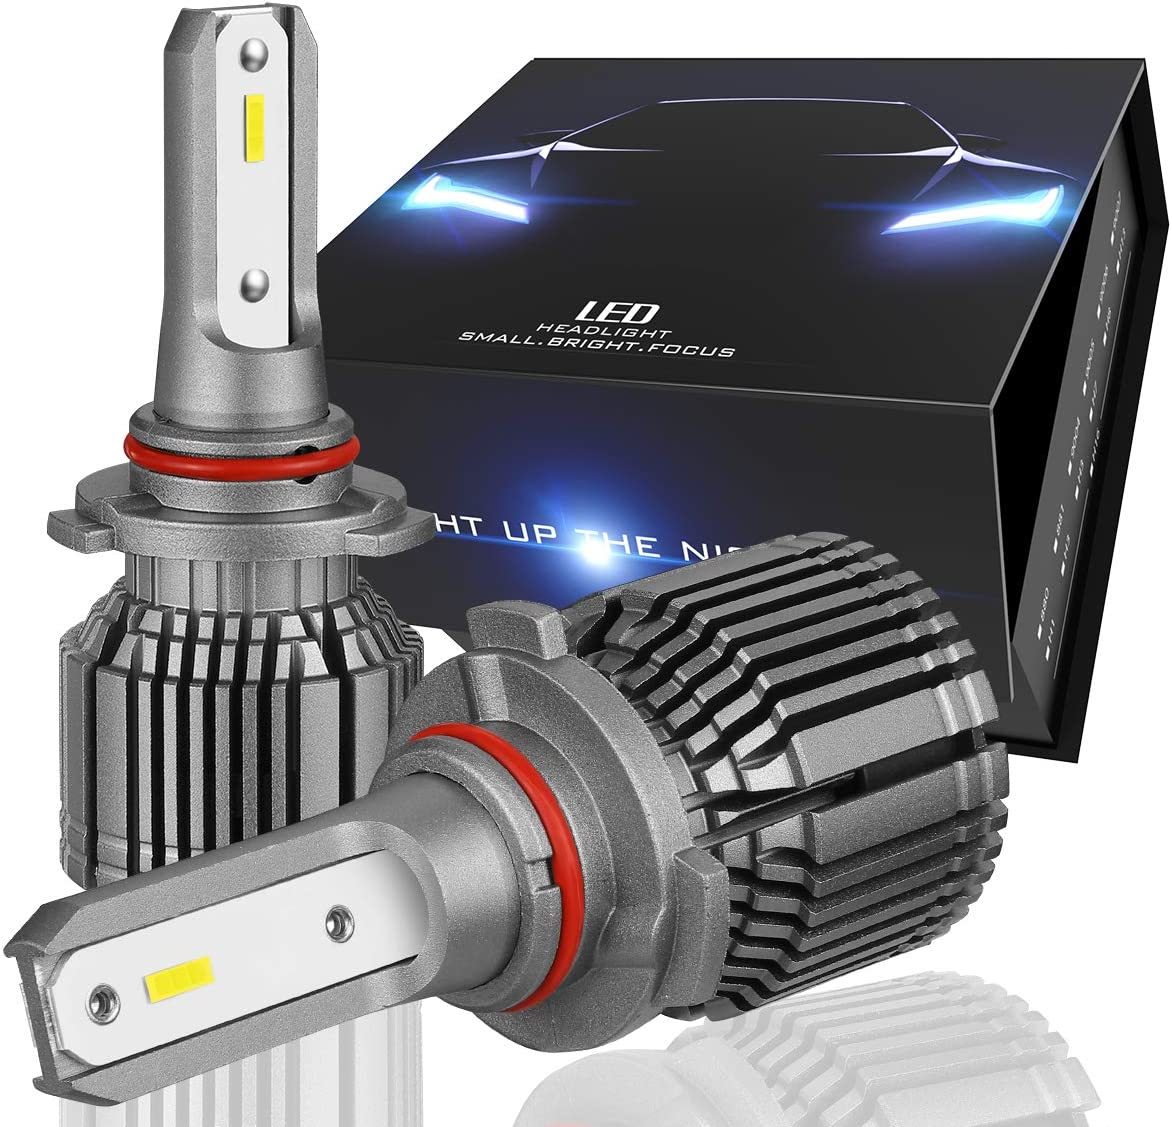 Nuvision Pair 9005 HB3 Bulbs 20000 Lumens 60W LED Headlight High/Low Beam Fog Lamp Light Conversion HID Kit with Fan